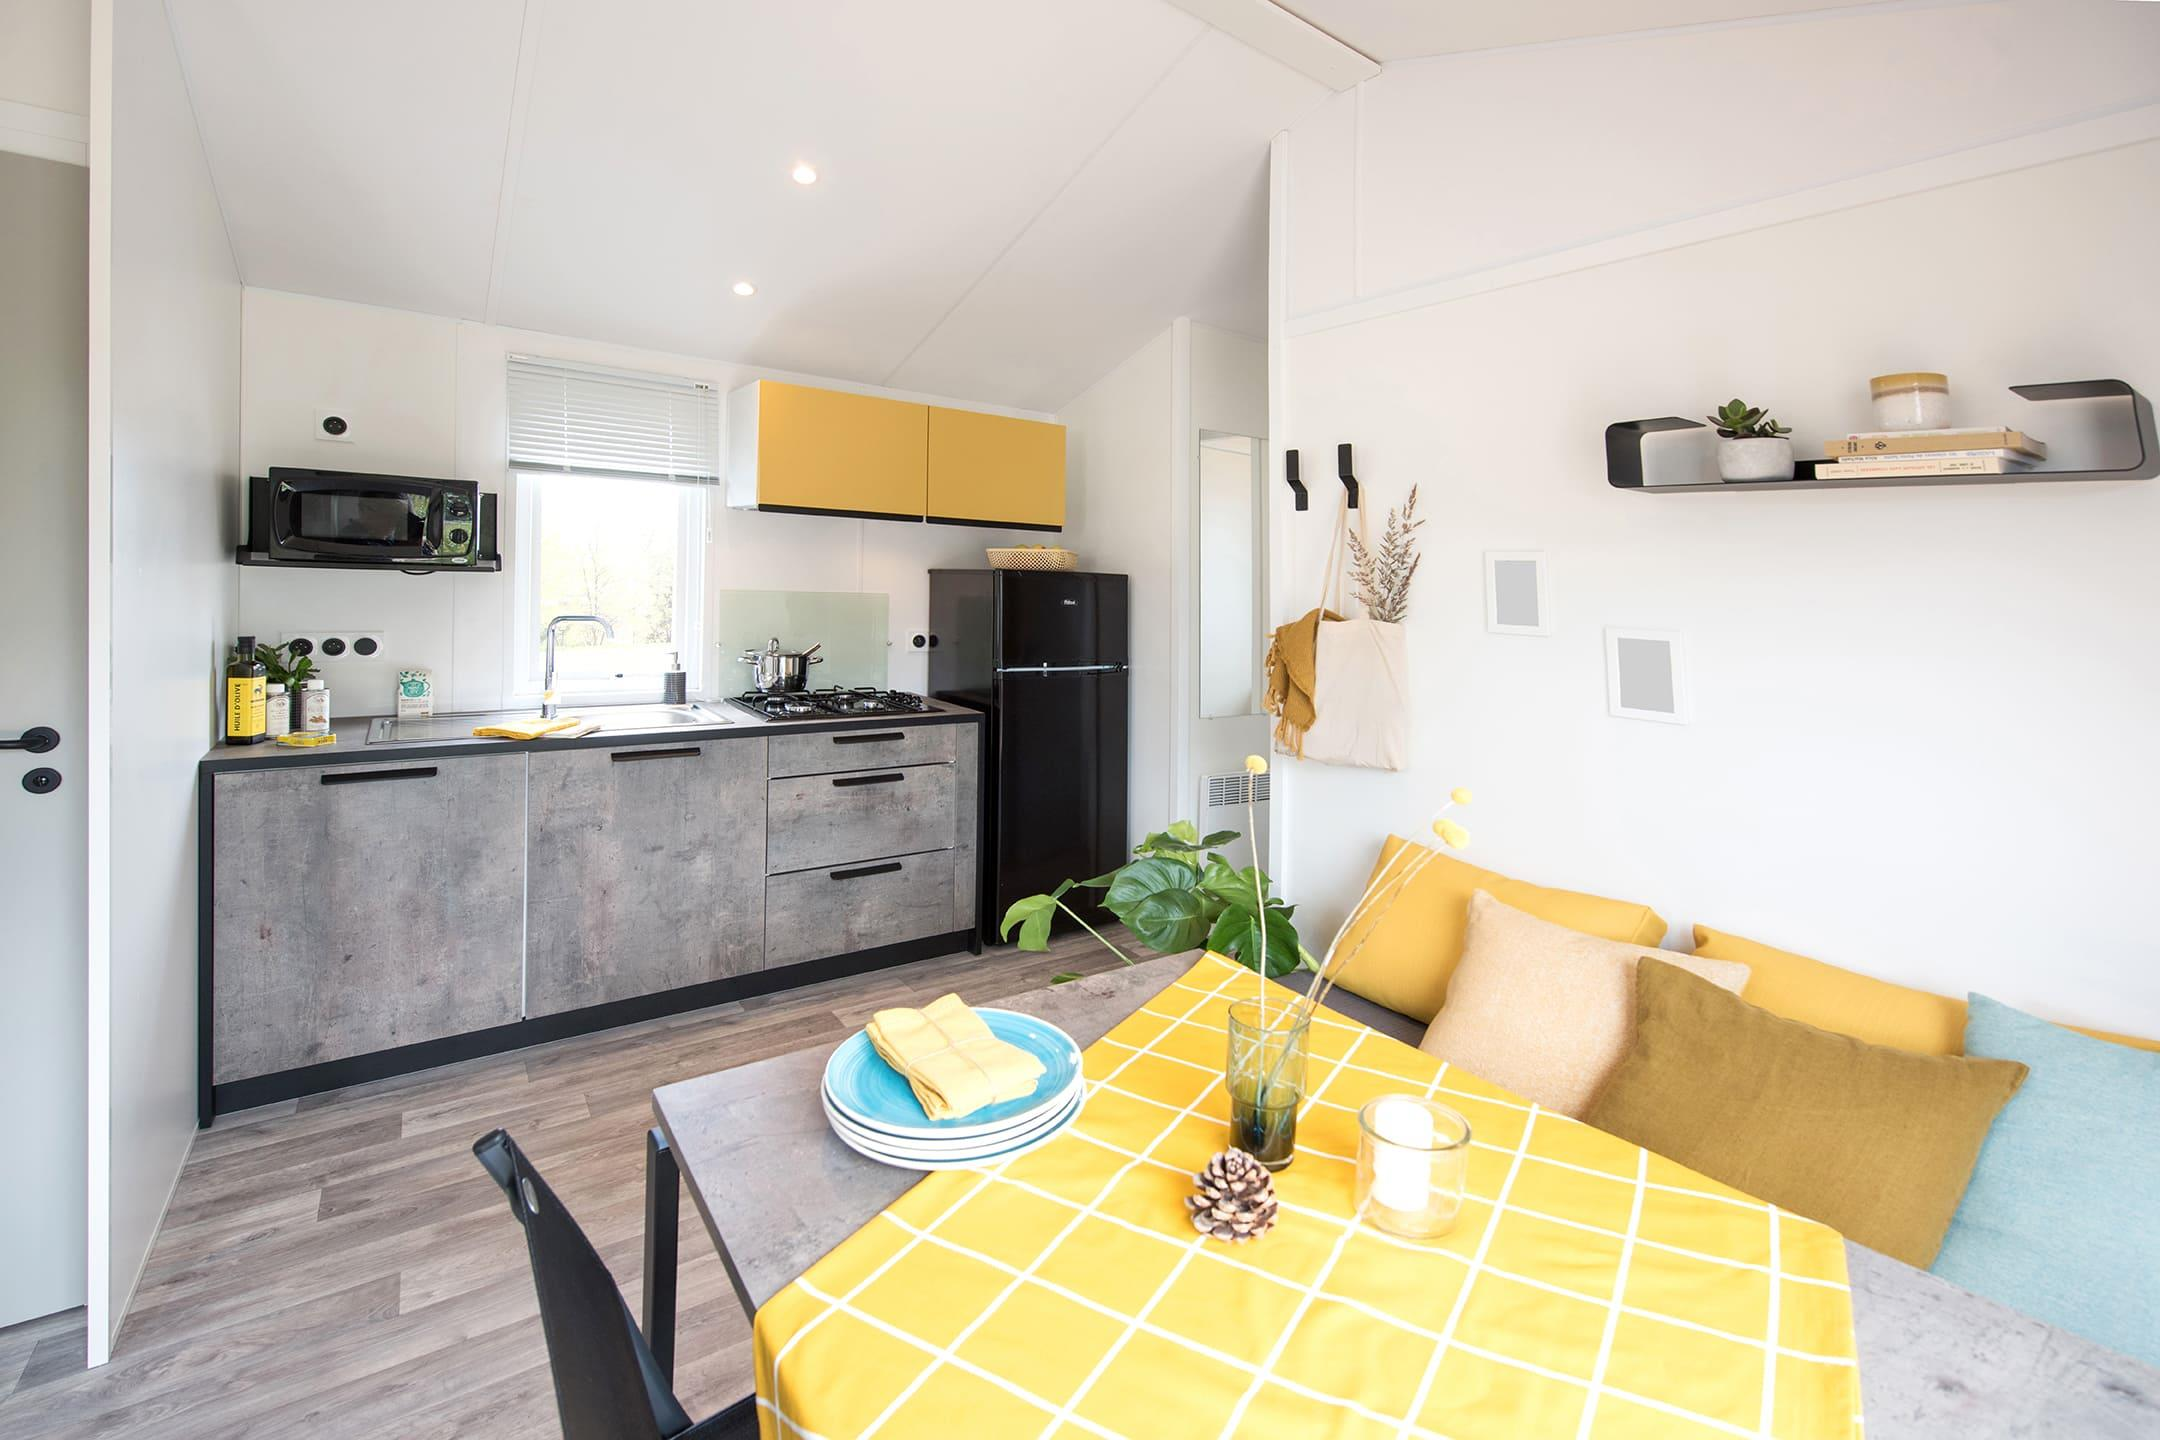 Location - Chalet Malaga 4 Pers 2 Chambres( S ) - Camping Airotel Oléron